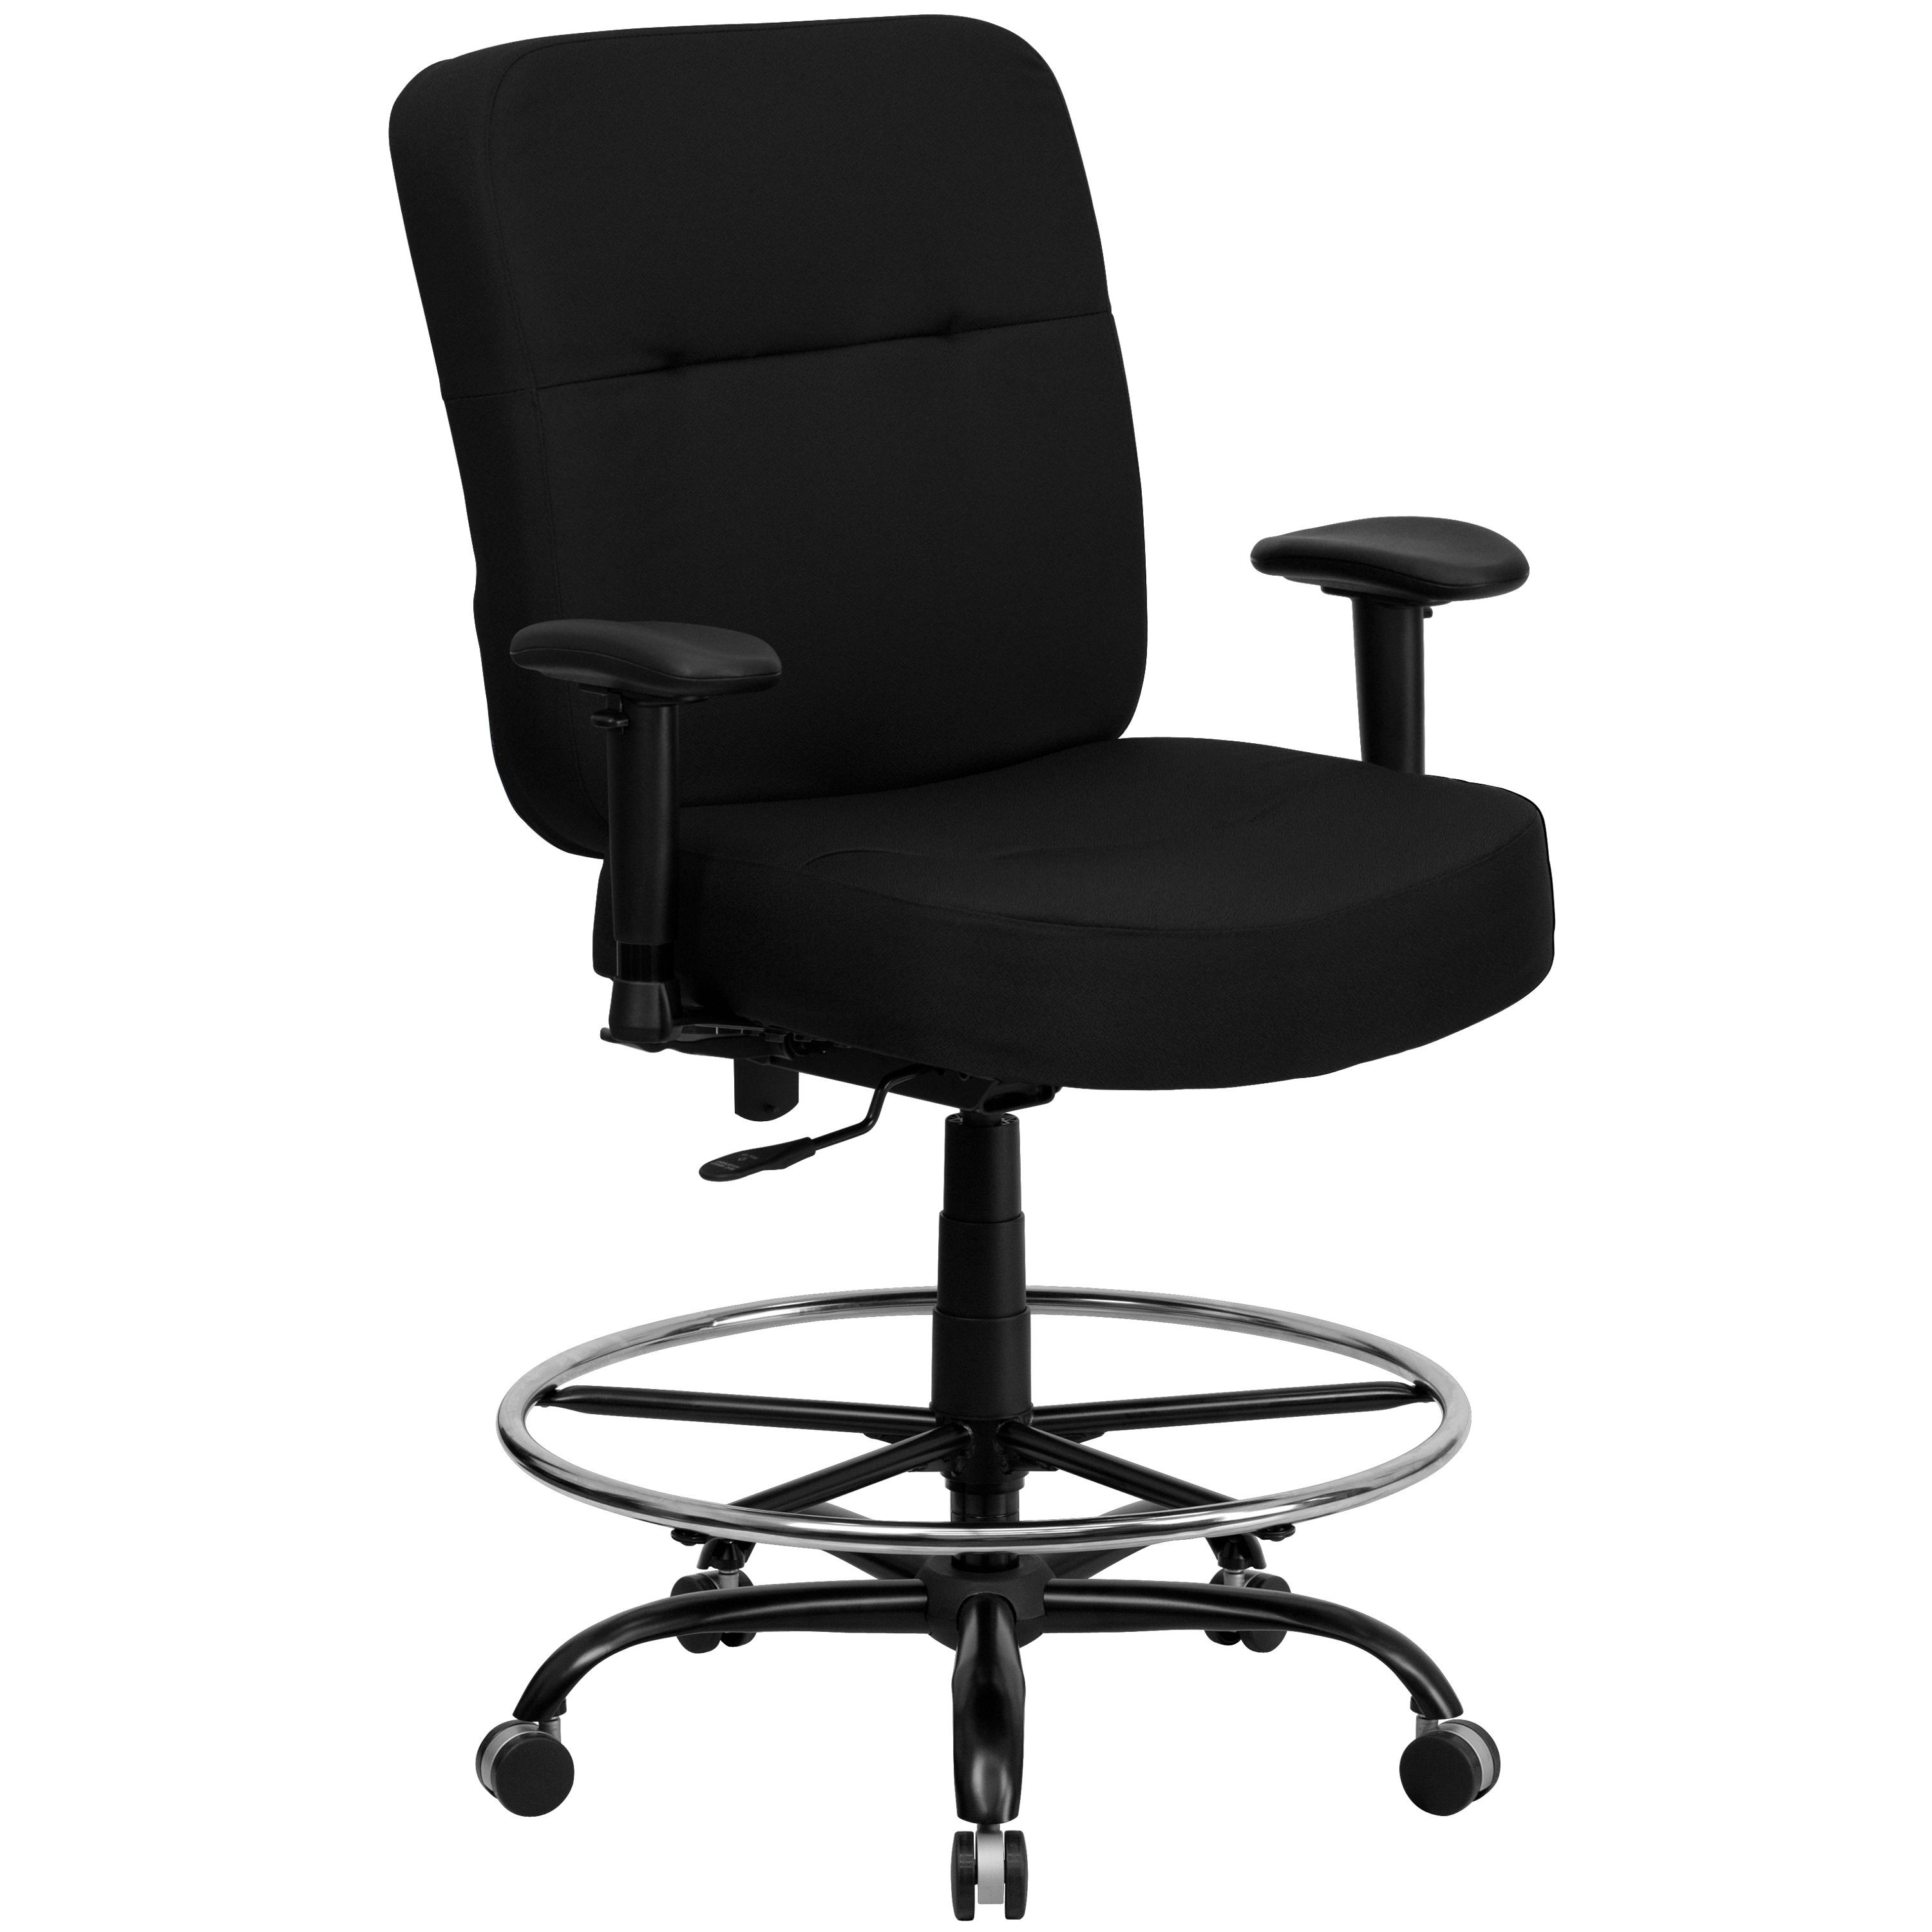 Flash Furniture WL-735SYG-BK-AD-GG HERCULES Series 400 Lb. Capacity Big & Tall Black Fabric Drafting Chair with Arms and Extra Wide Seat